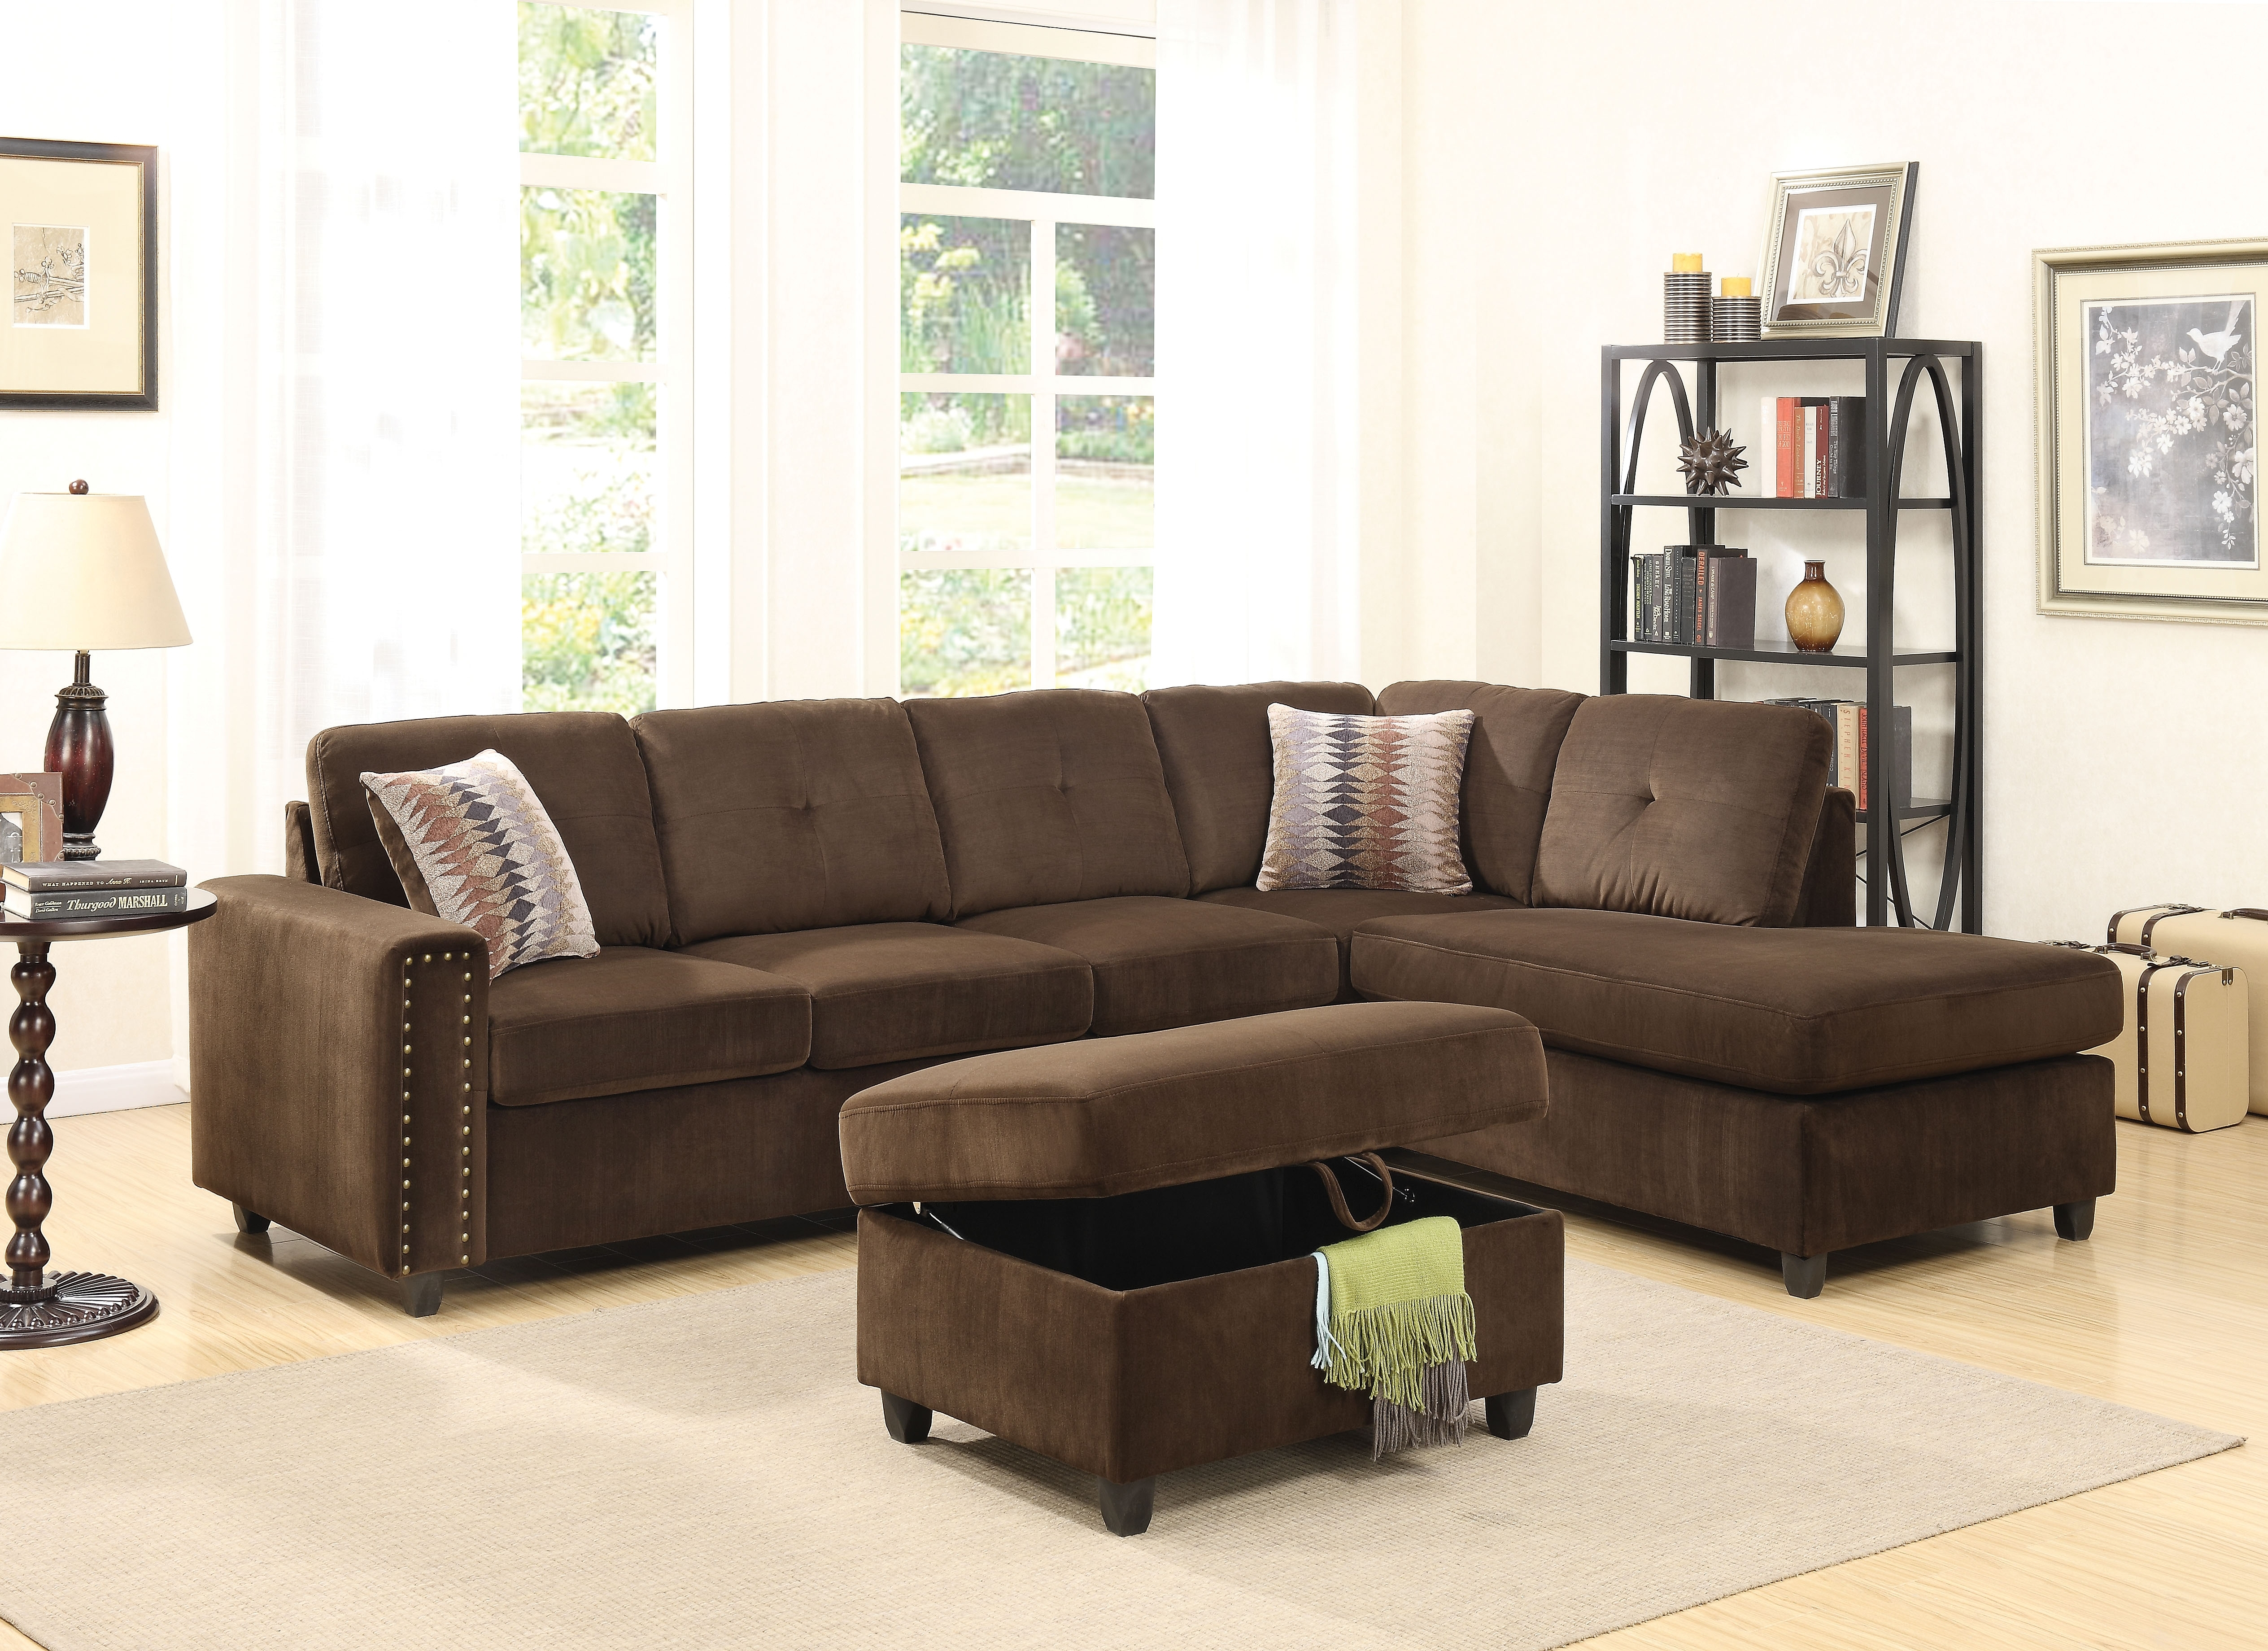 Acme Belville Reversible Sectional Sofa With 2 Pillows, Chocolate with regard to Chocolate Sectional Sofas (Image 2 of 15)